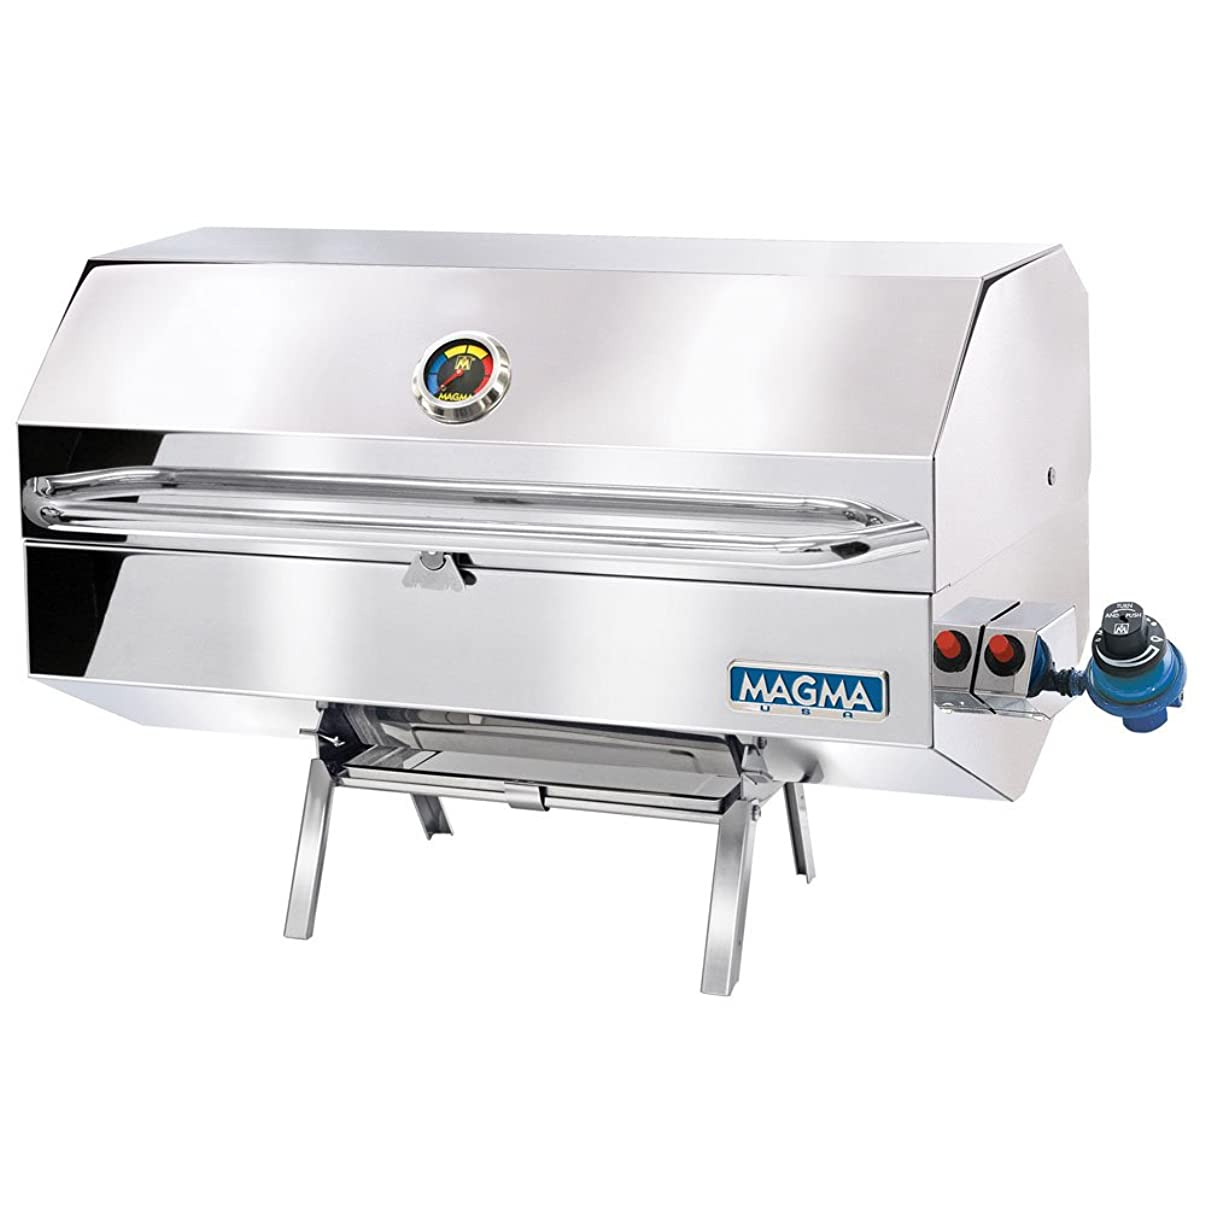 MAGMA Magma Monterey Gourmet Series Gas Grill / A10-1225L /